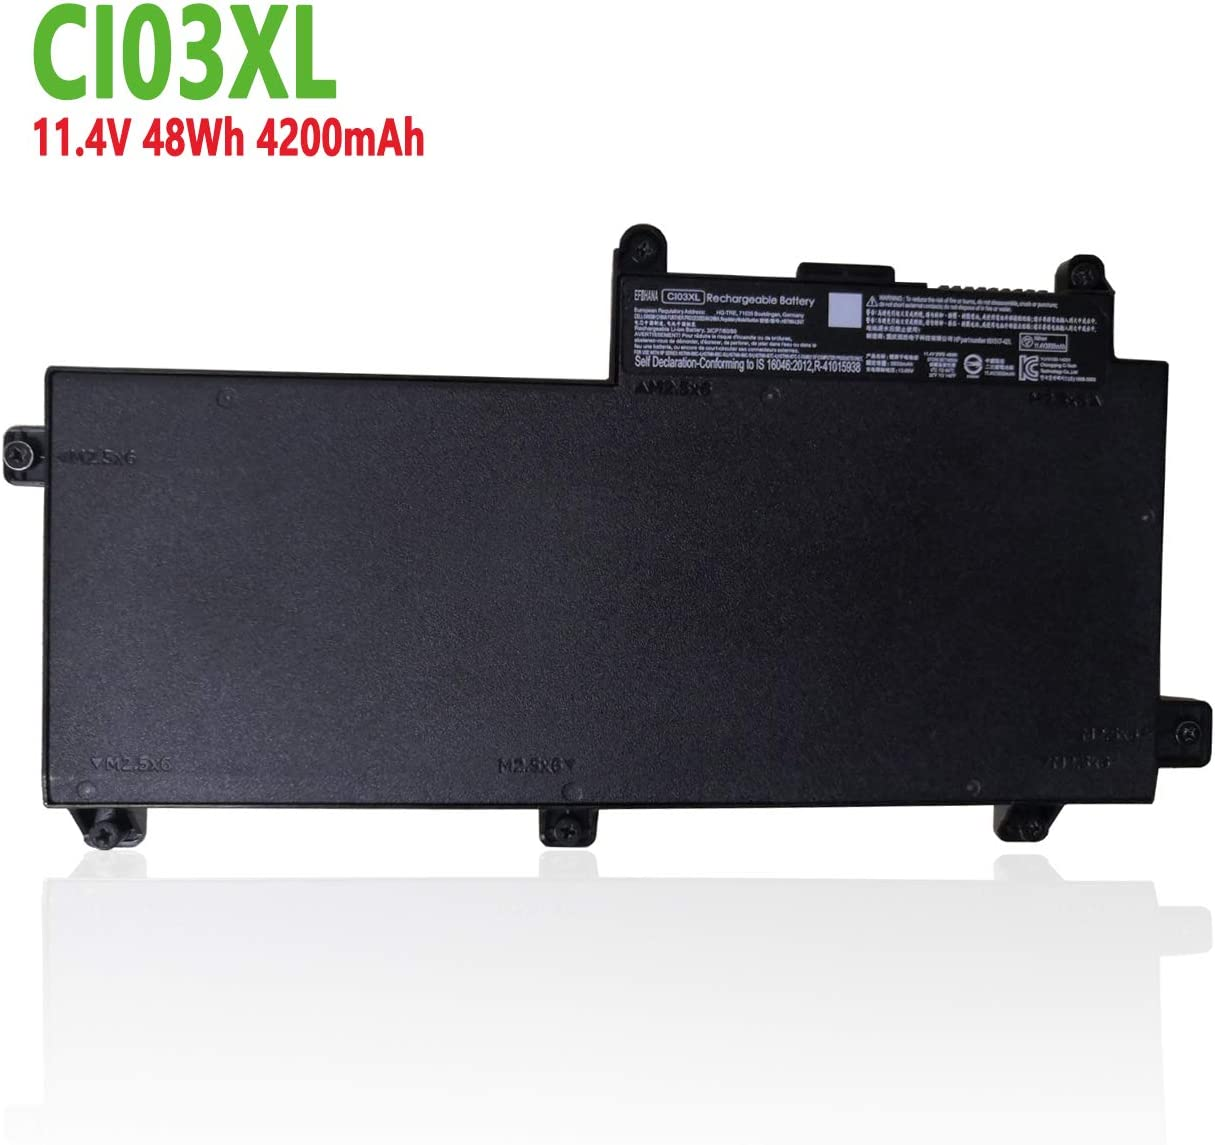 efohana CI03XL Laptop Battery Replacement for HP ProBook 640 G2,645 G2,650 G2,655 G2 Series Notebook HSTNN-LB6T 801517-422 CIO3XL CI03 CIO3 HSTNN-UB6Q 801554-001 11.4V 48Wh 4200mAh